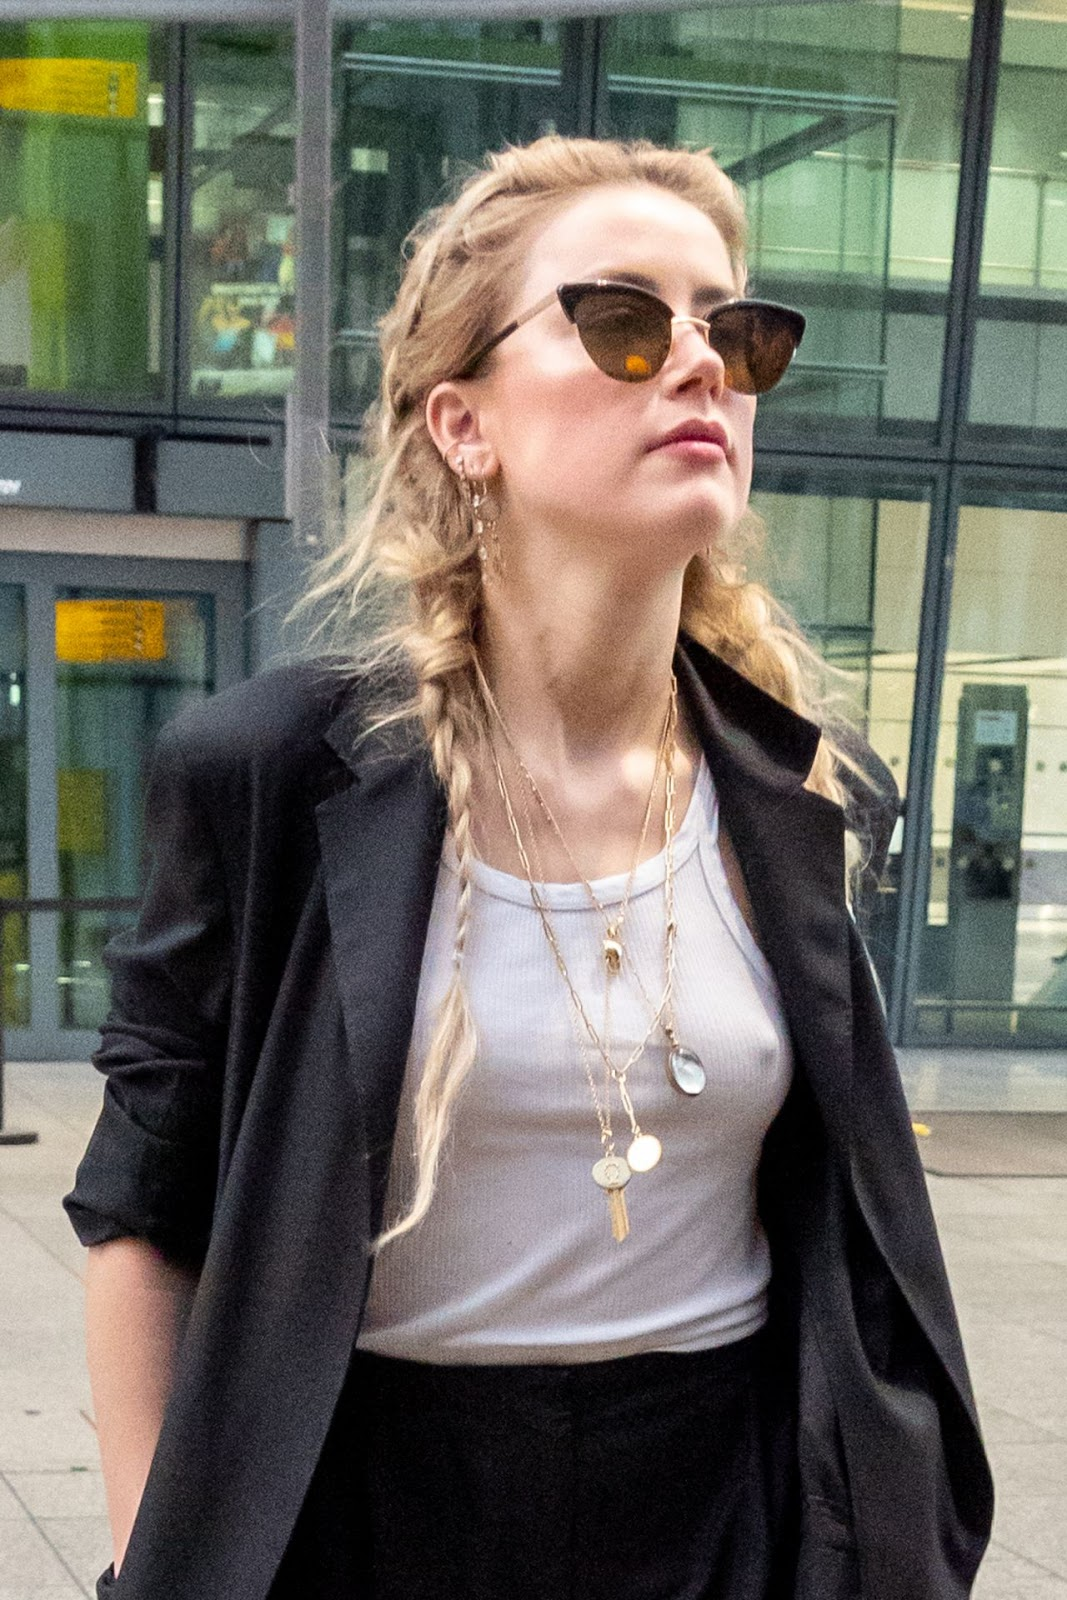 Amber Heard goes braless at Heathrow Airport